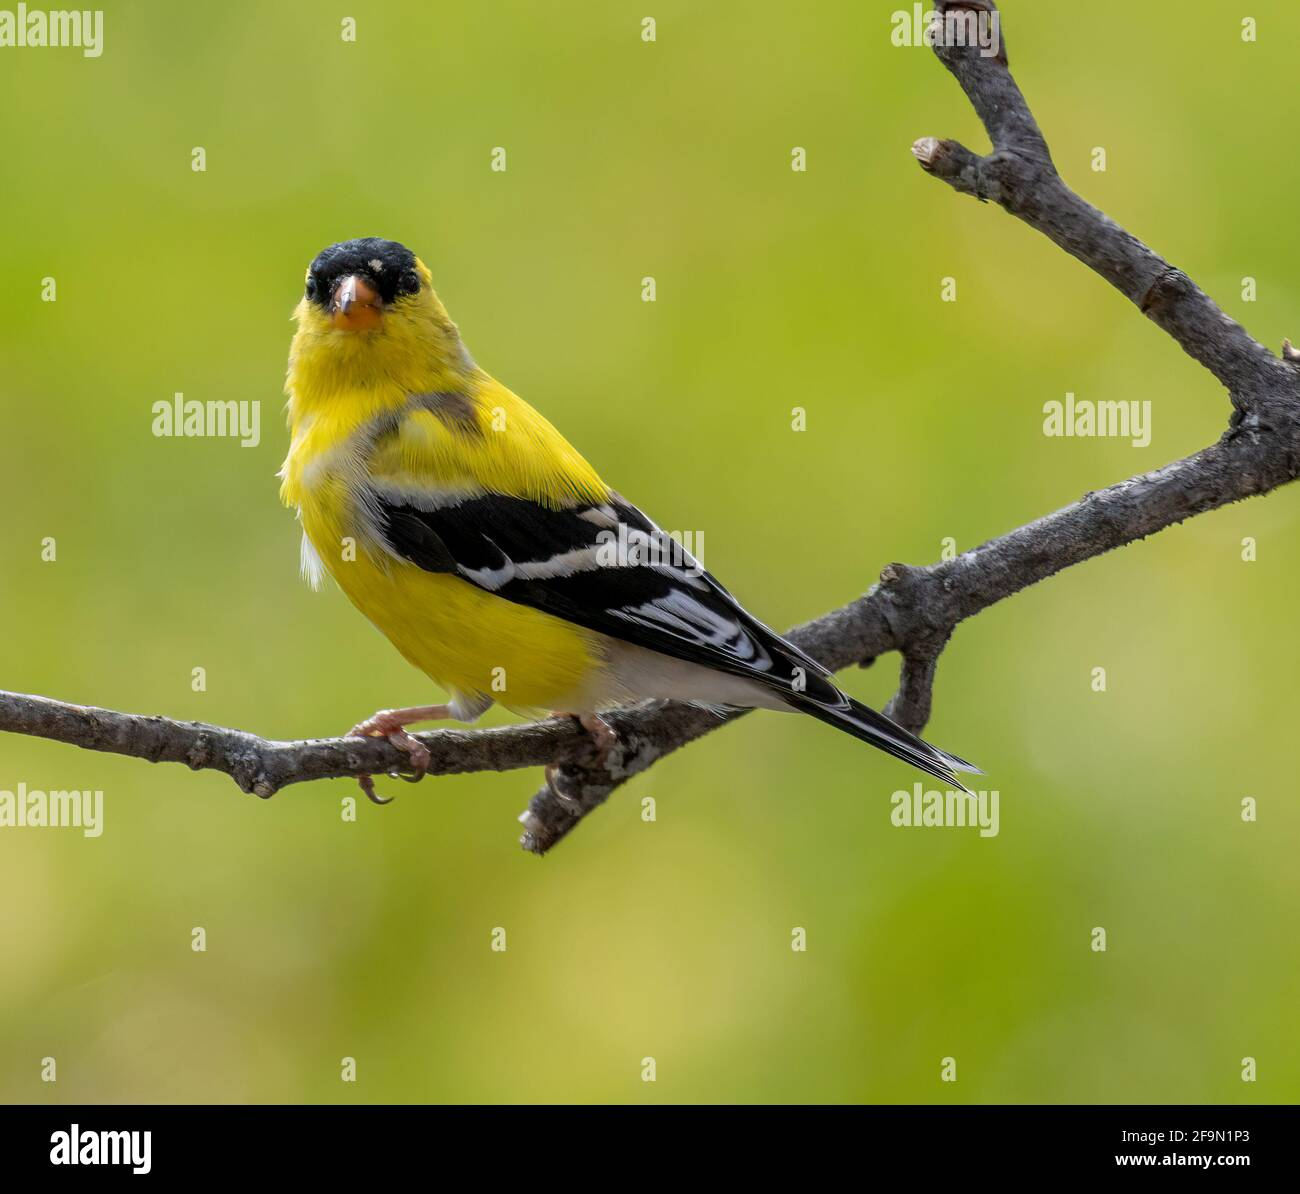 male-american-goldfinch-perched-on-branch-looking-at-camera-spinus-tristis-2F9N1P3.jpg